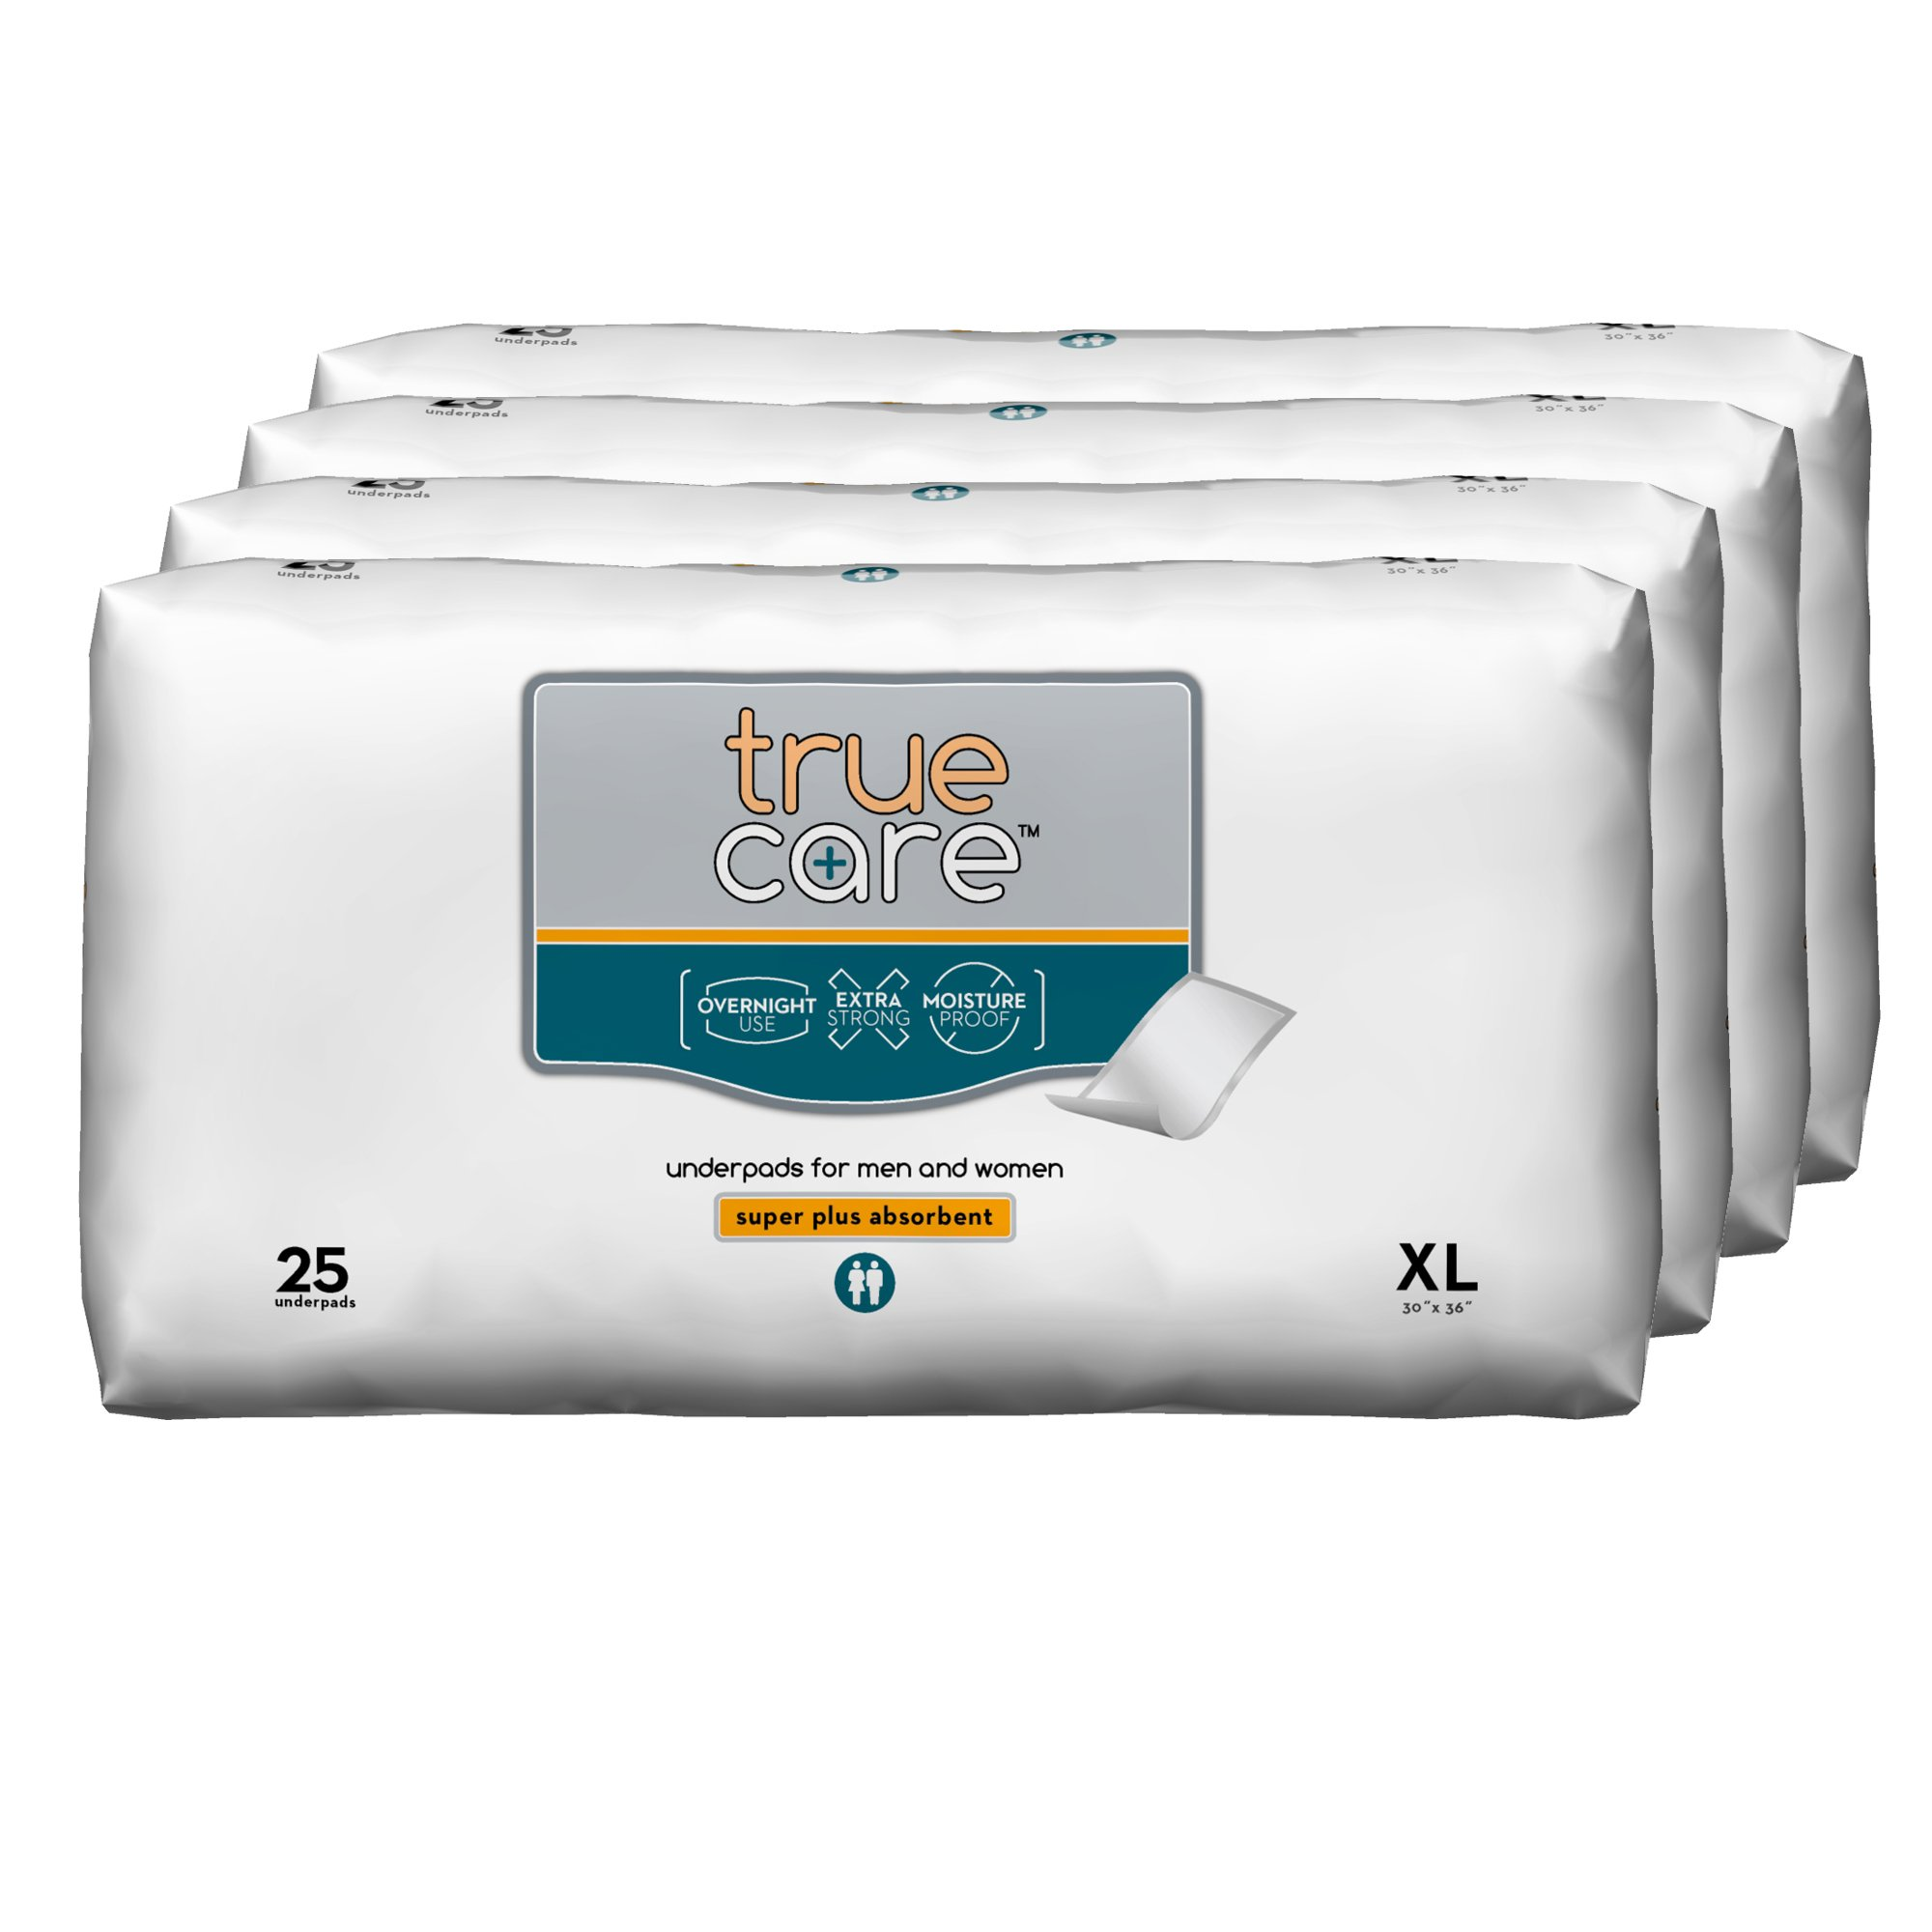 True Care Super Absorbent Incontinence Underpads, Extra Large, 30 by 36 Inches, 100 Count